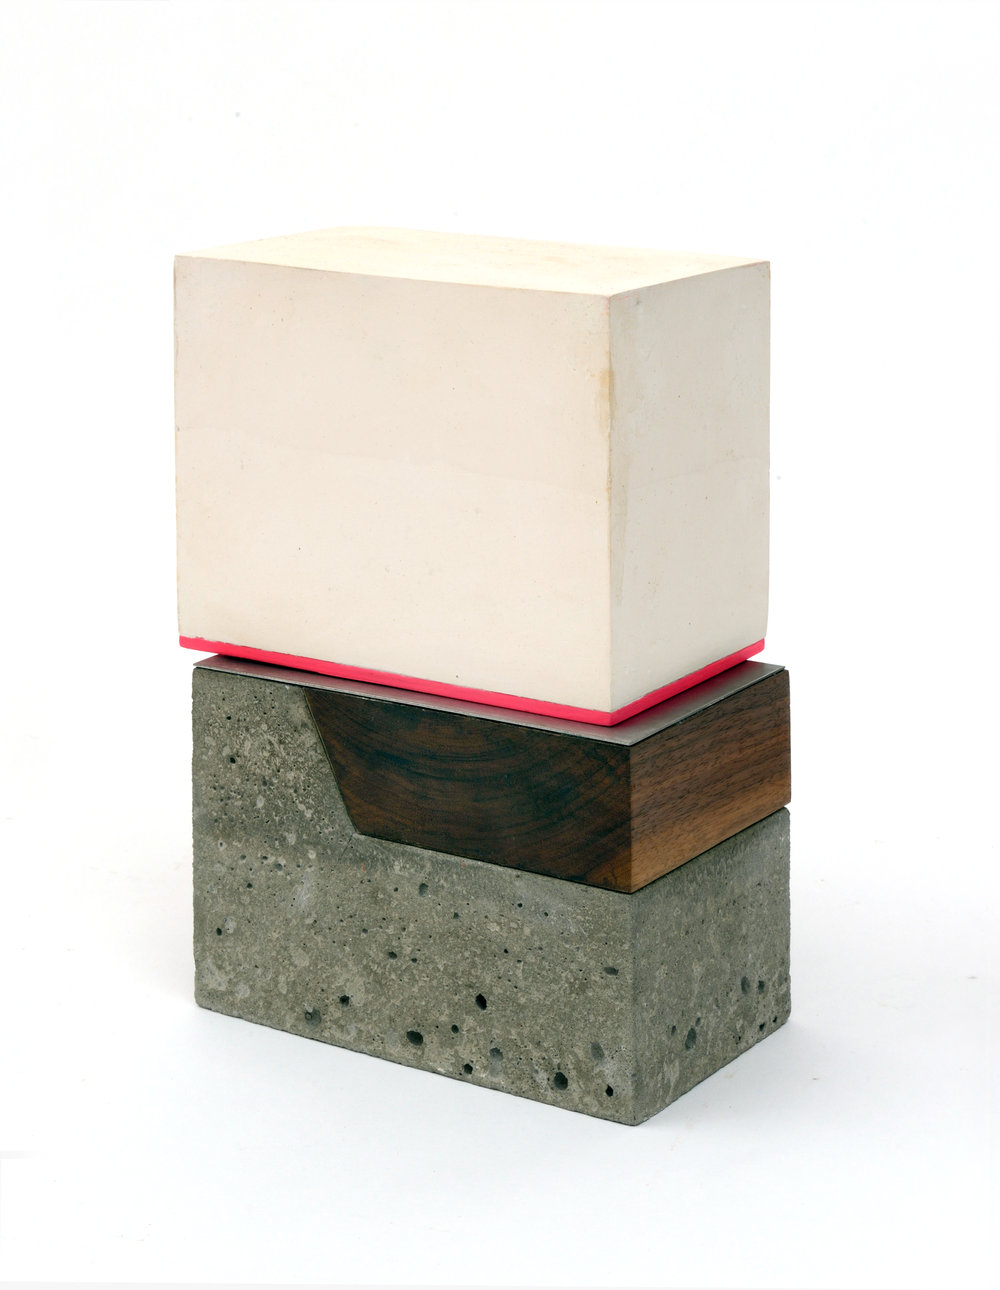 Plaster, Concrete, Steel & Walnut with Pink Line